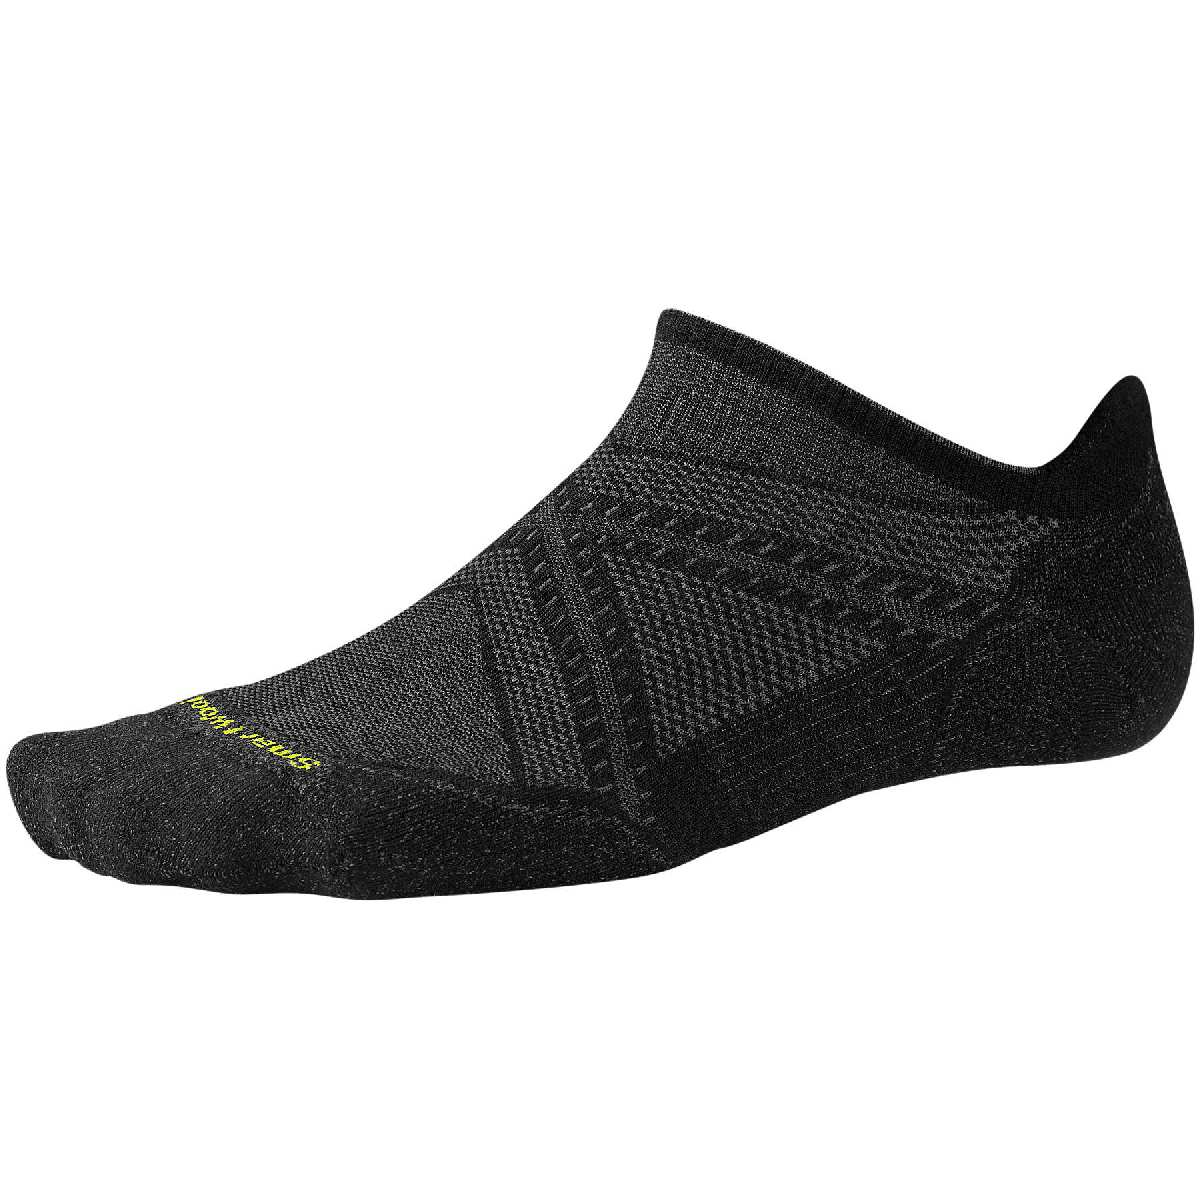 SmartWool PhD Light Elite Micro Running Sock Size L Black U.S.A. & Canada